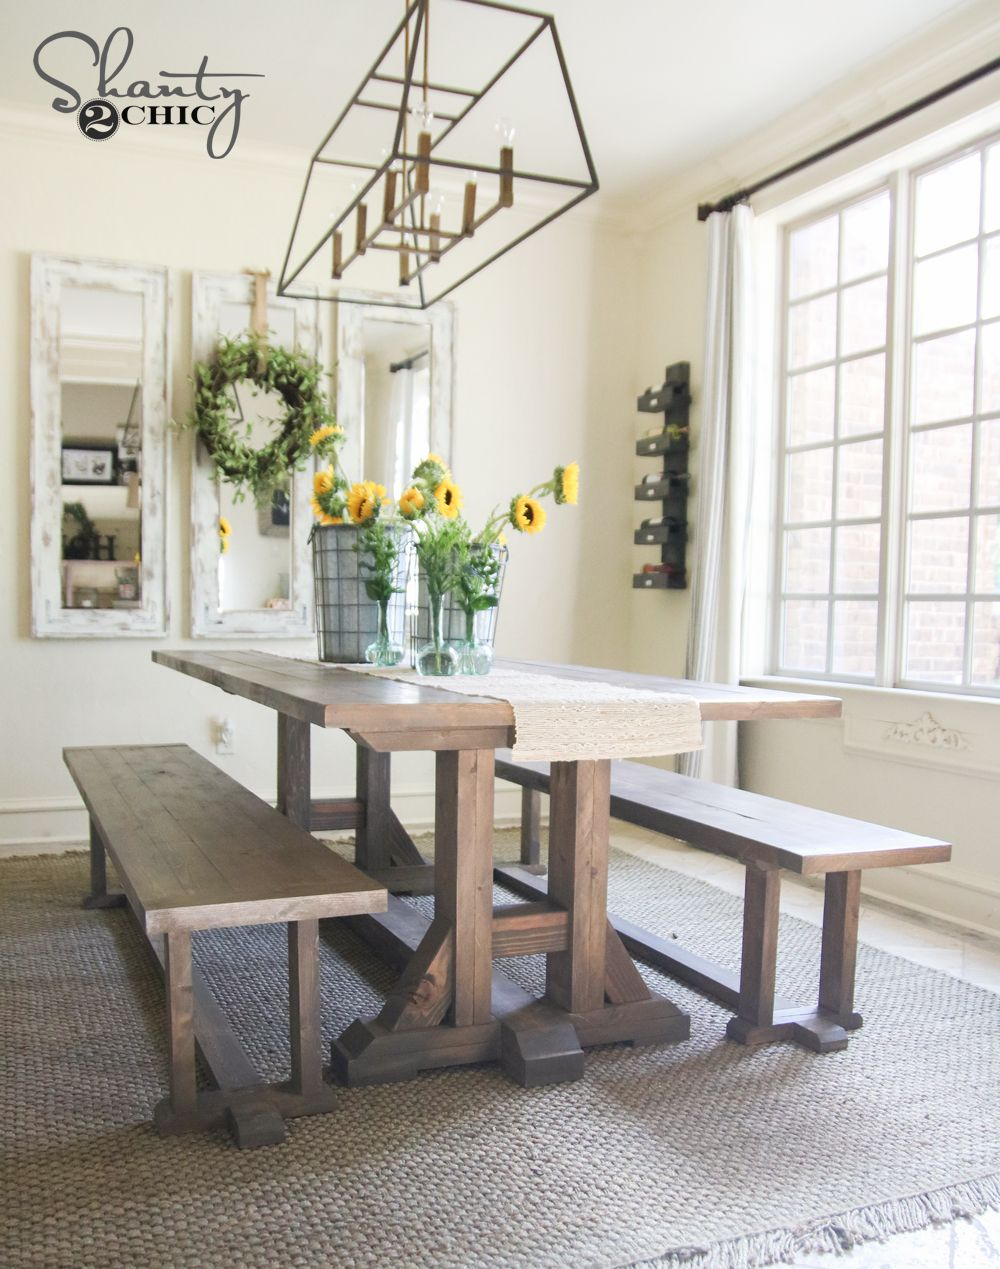 Diy Pottery Barn Inspired Dining Table For $100  Pottery Barn Cool Dining Room Pottery Barn Inspiration